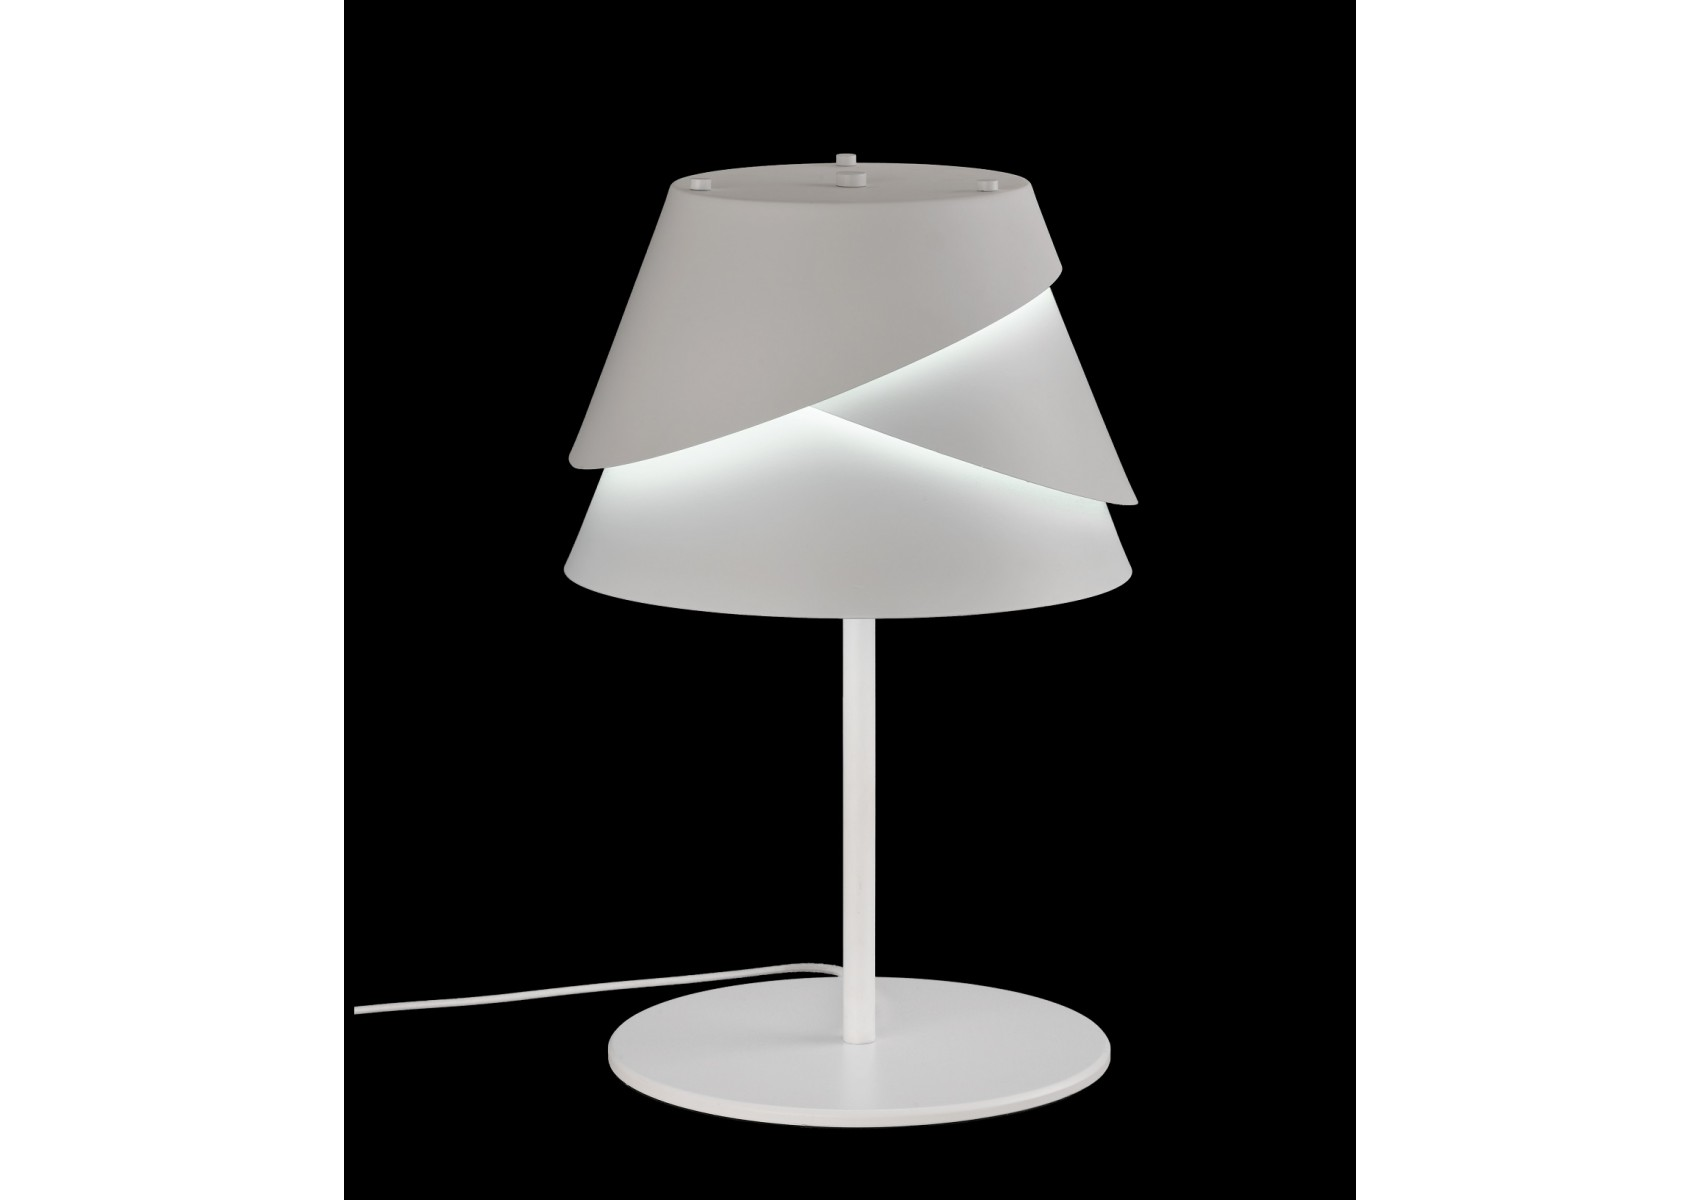 Lampe de table moderne alboran en m tal de chez mantra for Lampe de table rona